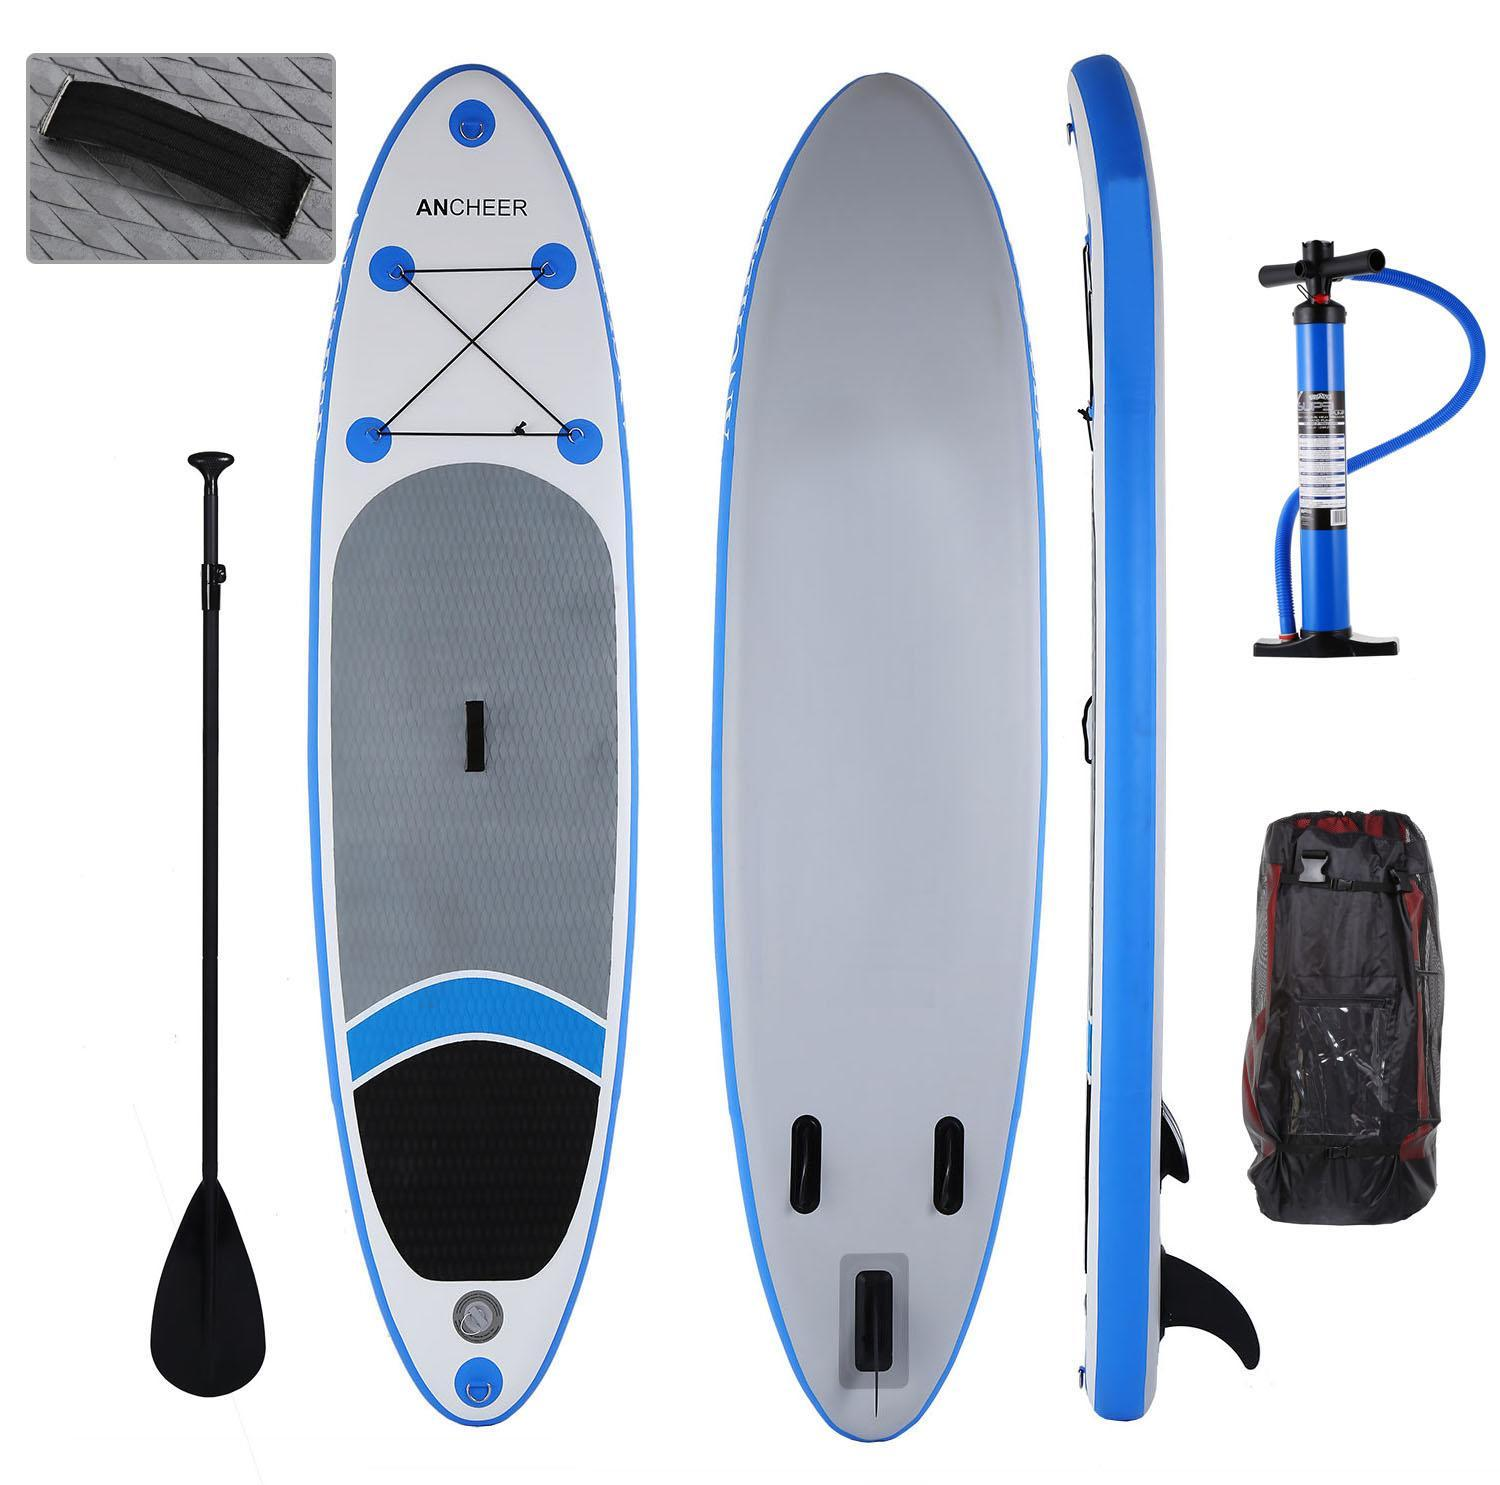 Inflatable SUP Stand Up Paddle Board 11', Inflatable Paddle Board (6'' Thick SUP board), iSUP Board Package with Adjustable Paddle, Pump and Backpack